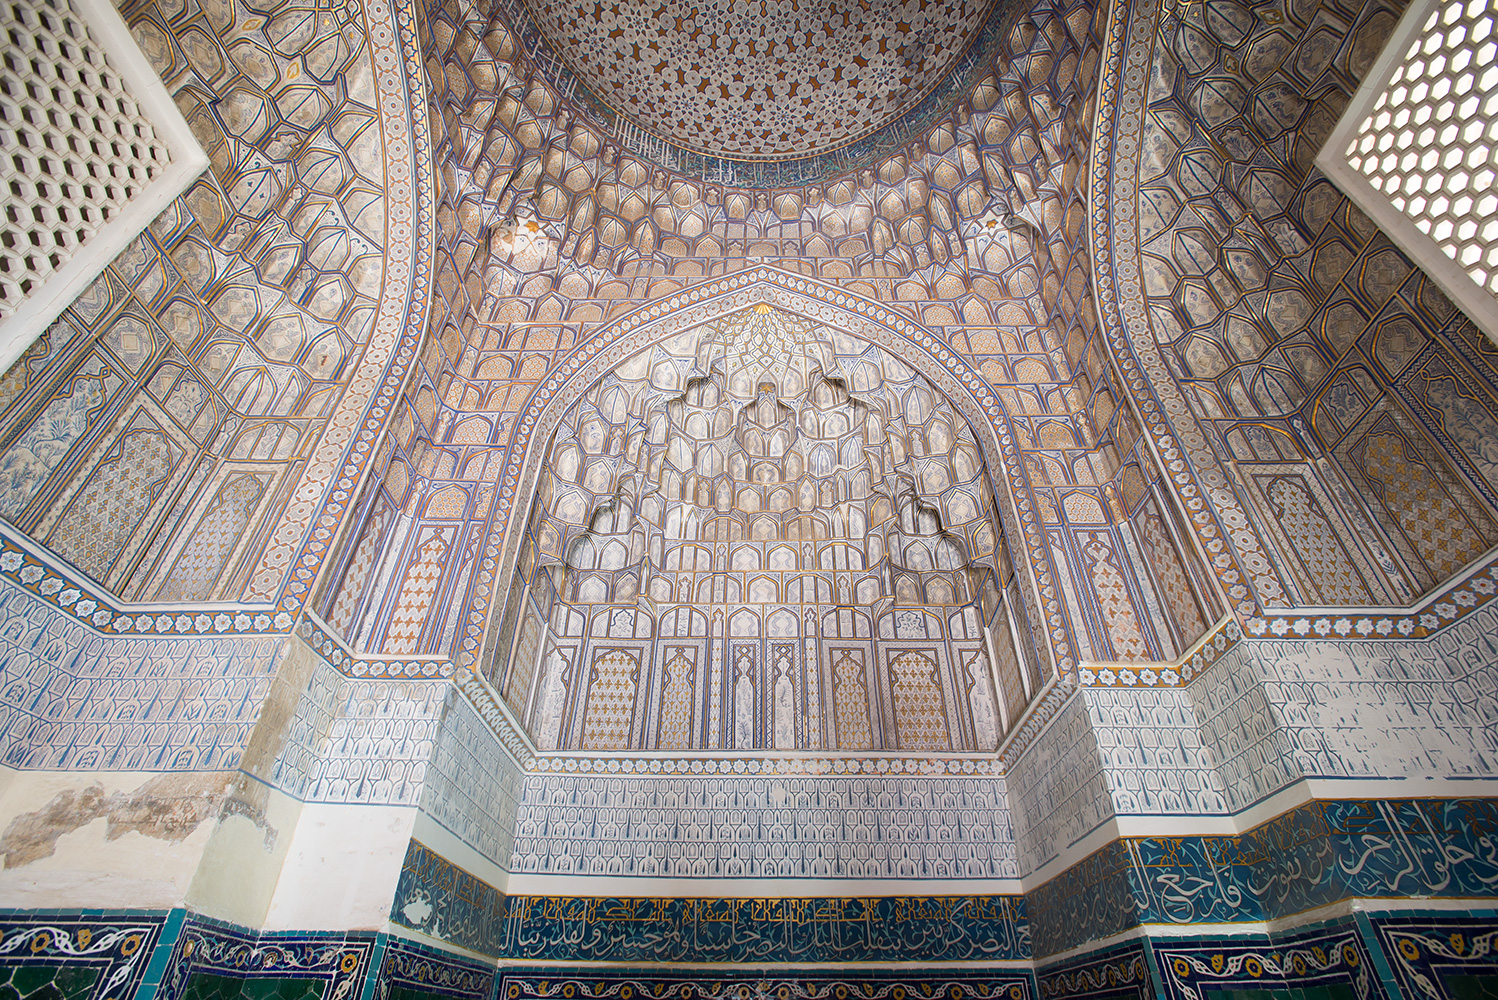 The mausoleum of Emir Timur's favourite wife, Tuman AkaBuilt in 1405